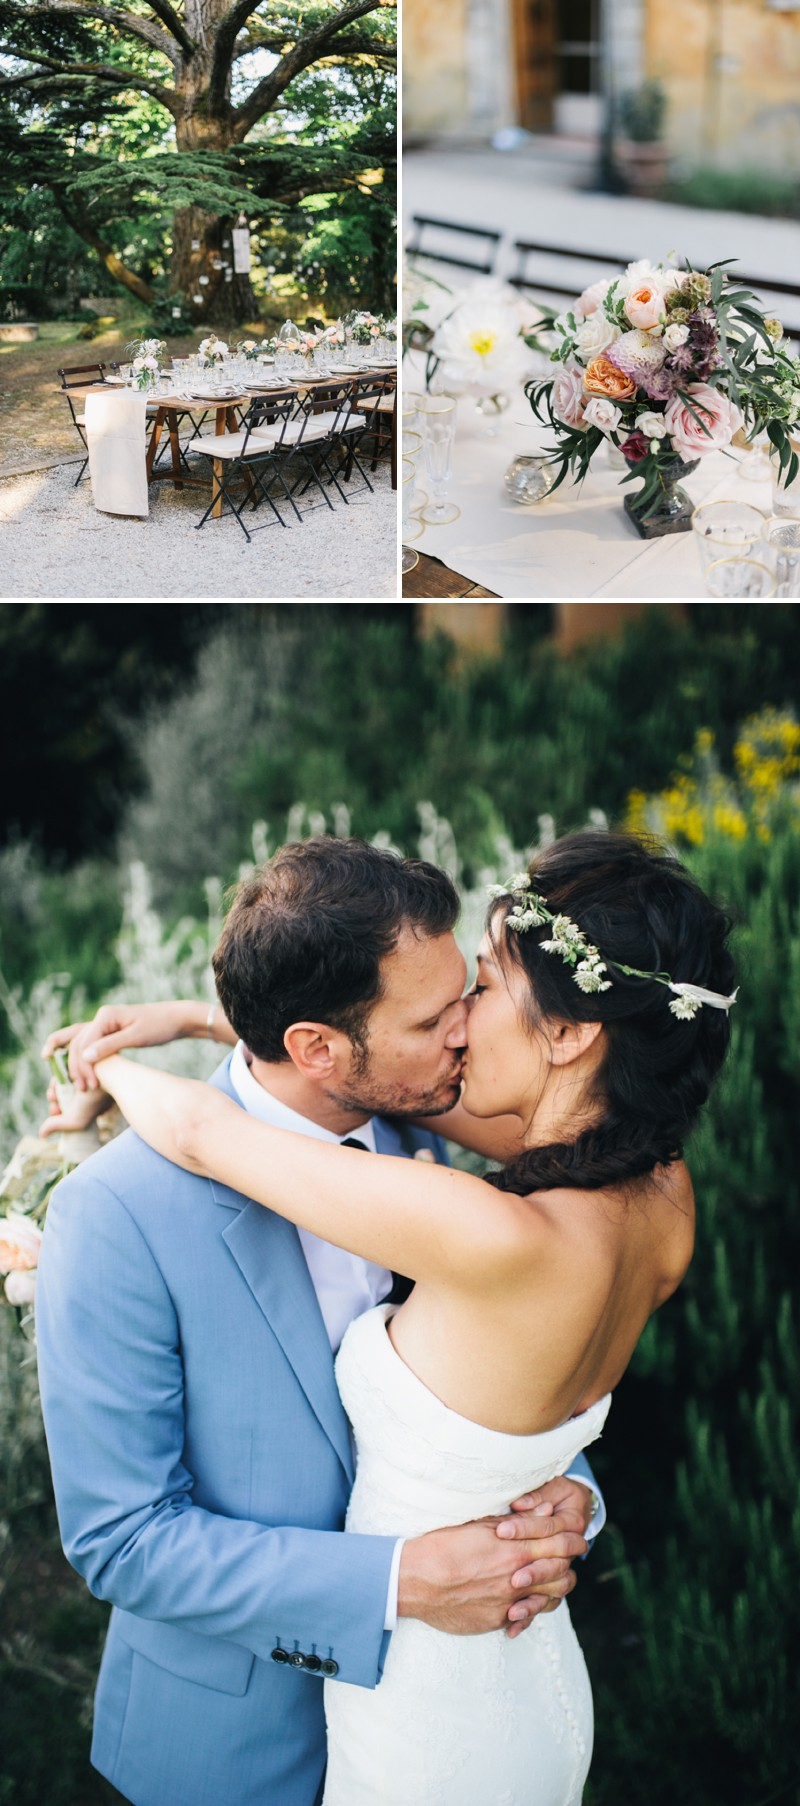 A Beautiful Italian Destination Wedding At Villa Di Ulignano With A Pronovias Dress And A Flower Wreath And A Rose Bouquet By Lisa Poggi Photography._0009